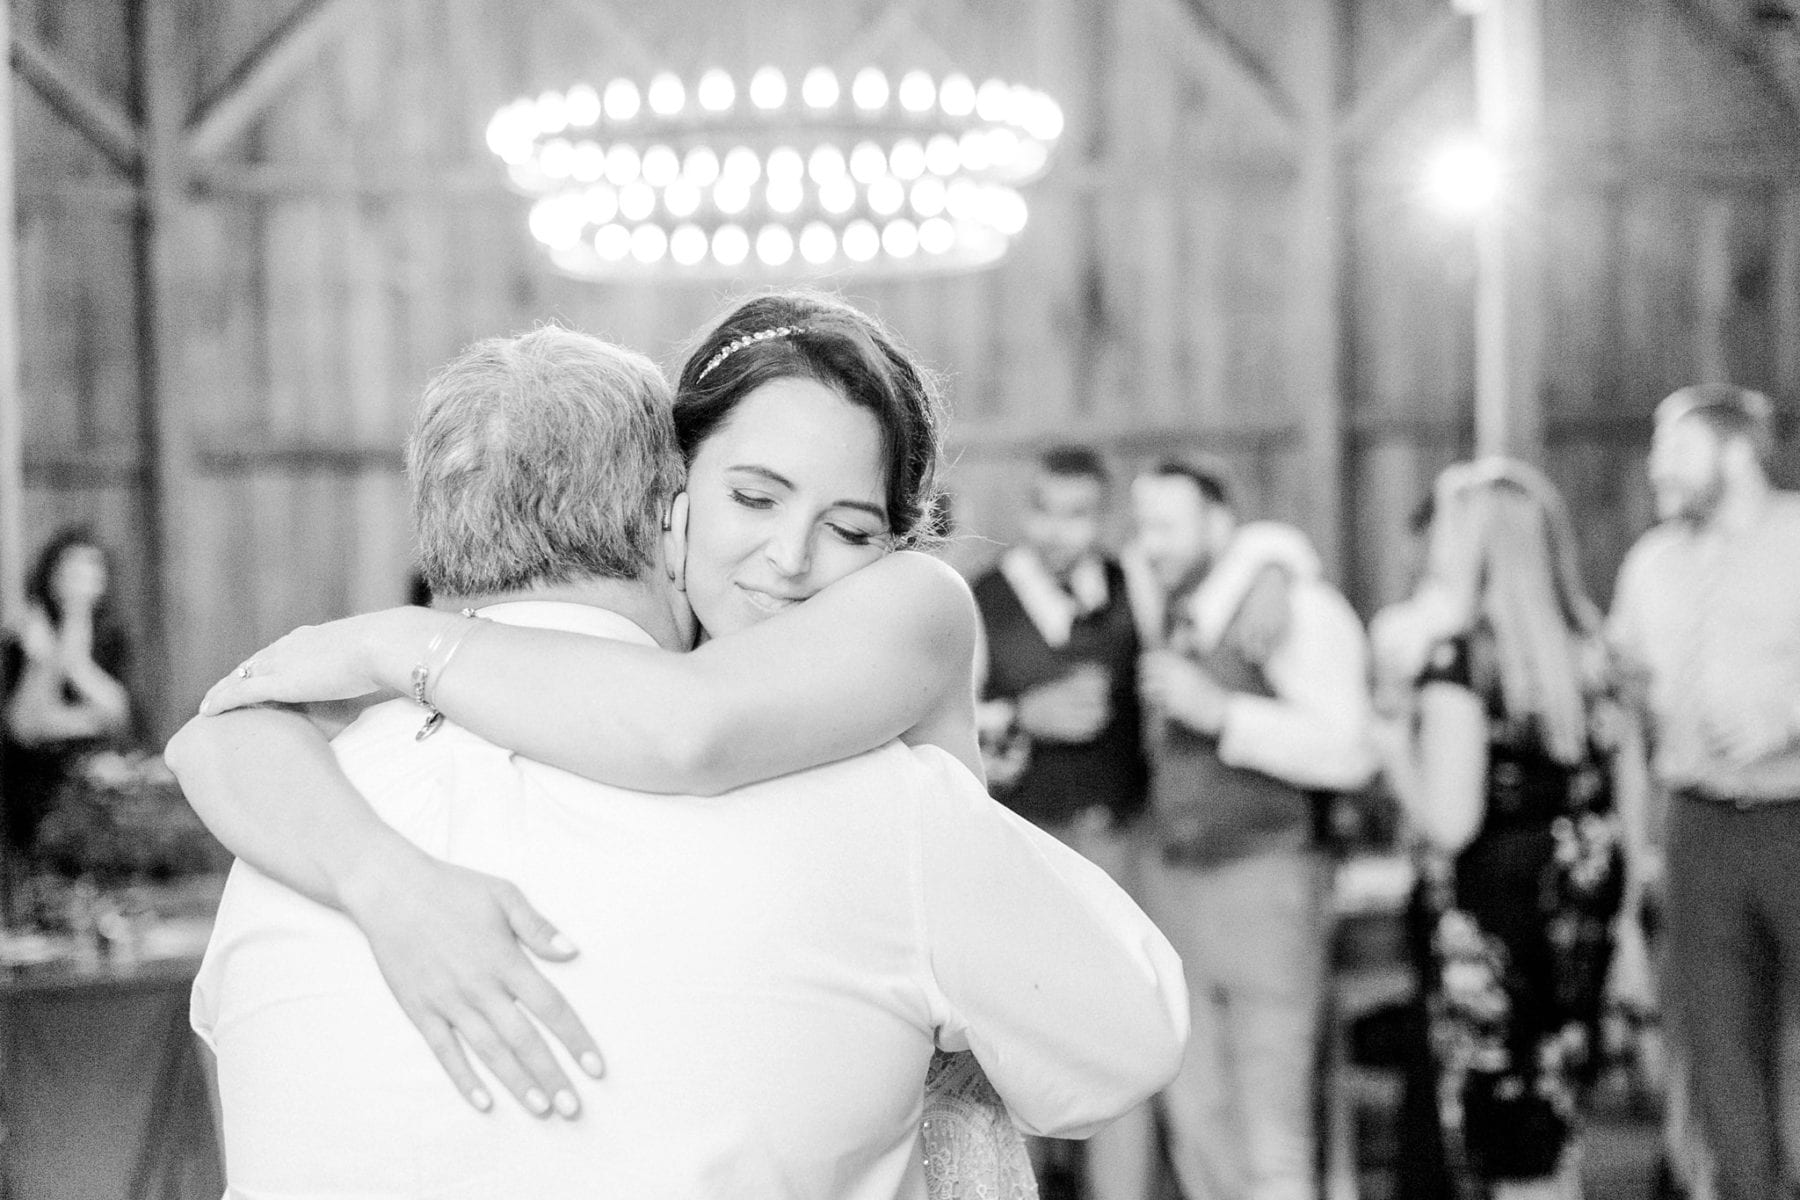 Tranquility Farm Wedding Photos Leesburg Wedding Photographer Megan Kelsey Photography Virginia Wedding Photographer Matt & Colleen-190.jpg